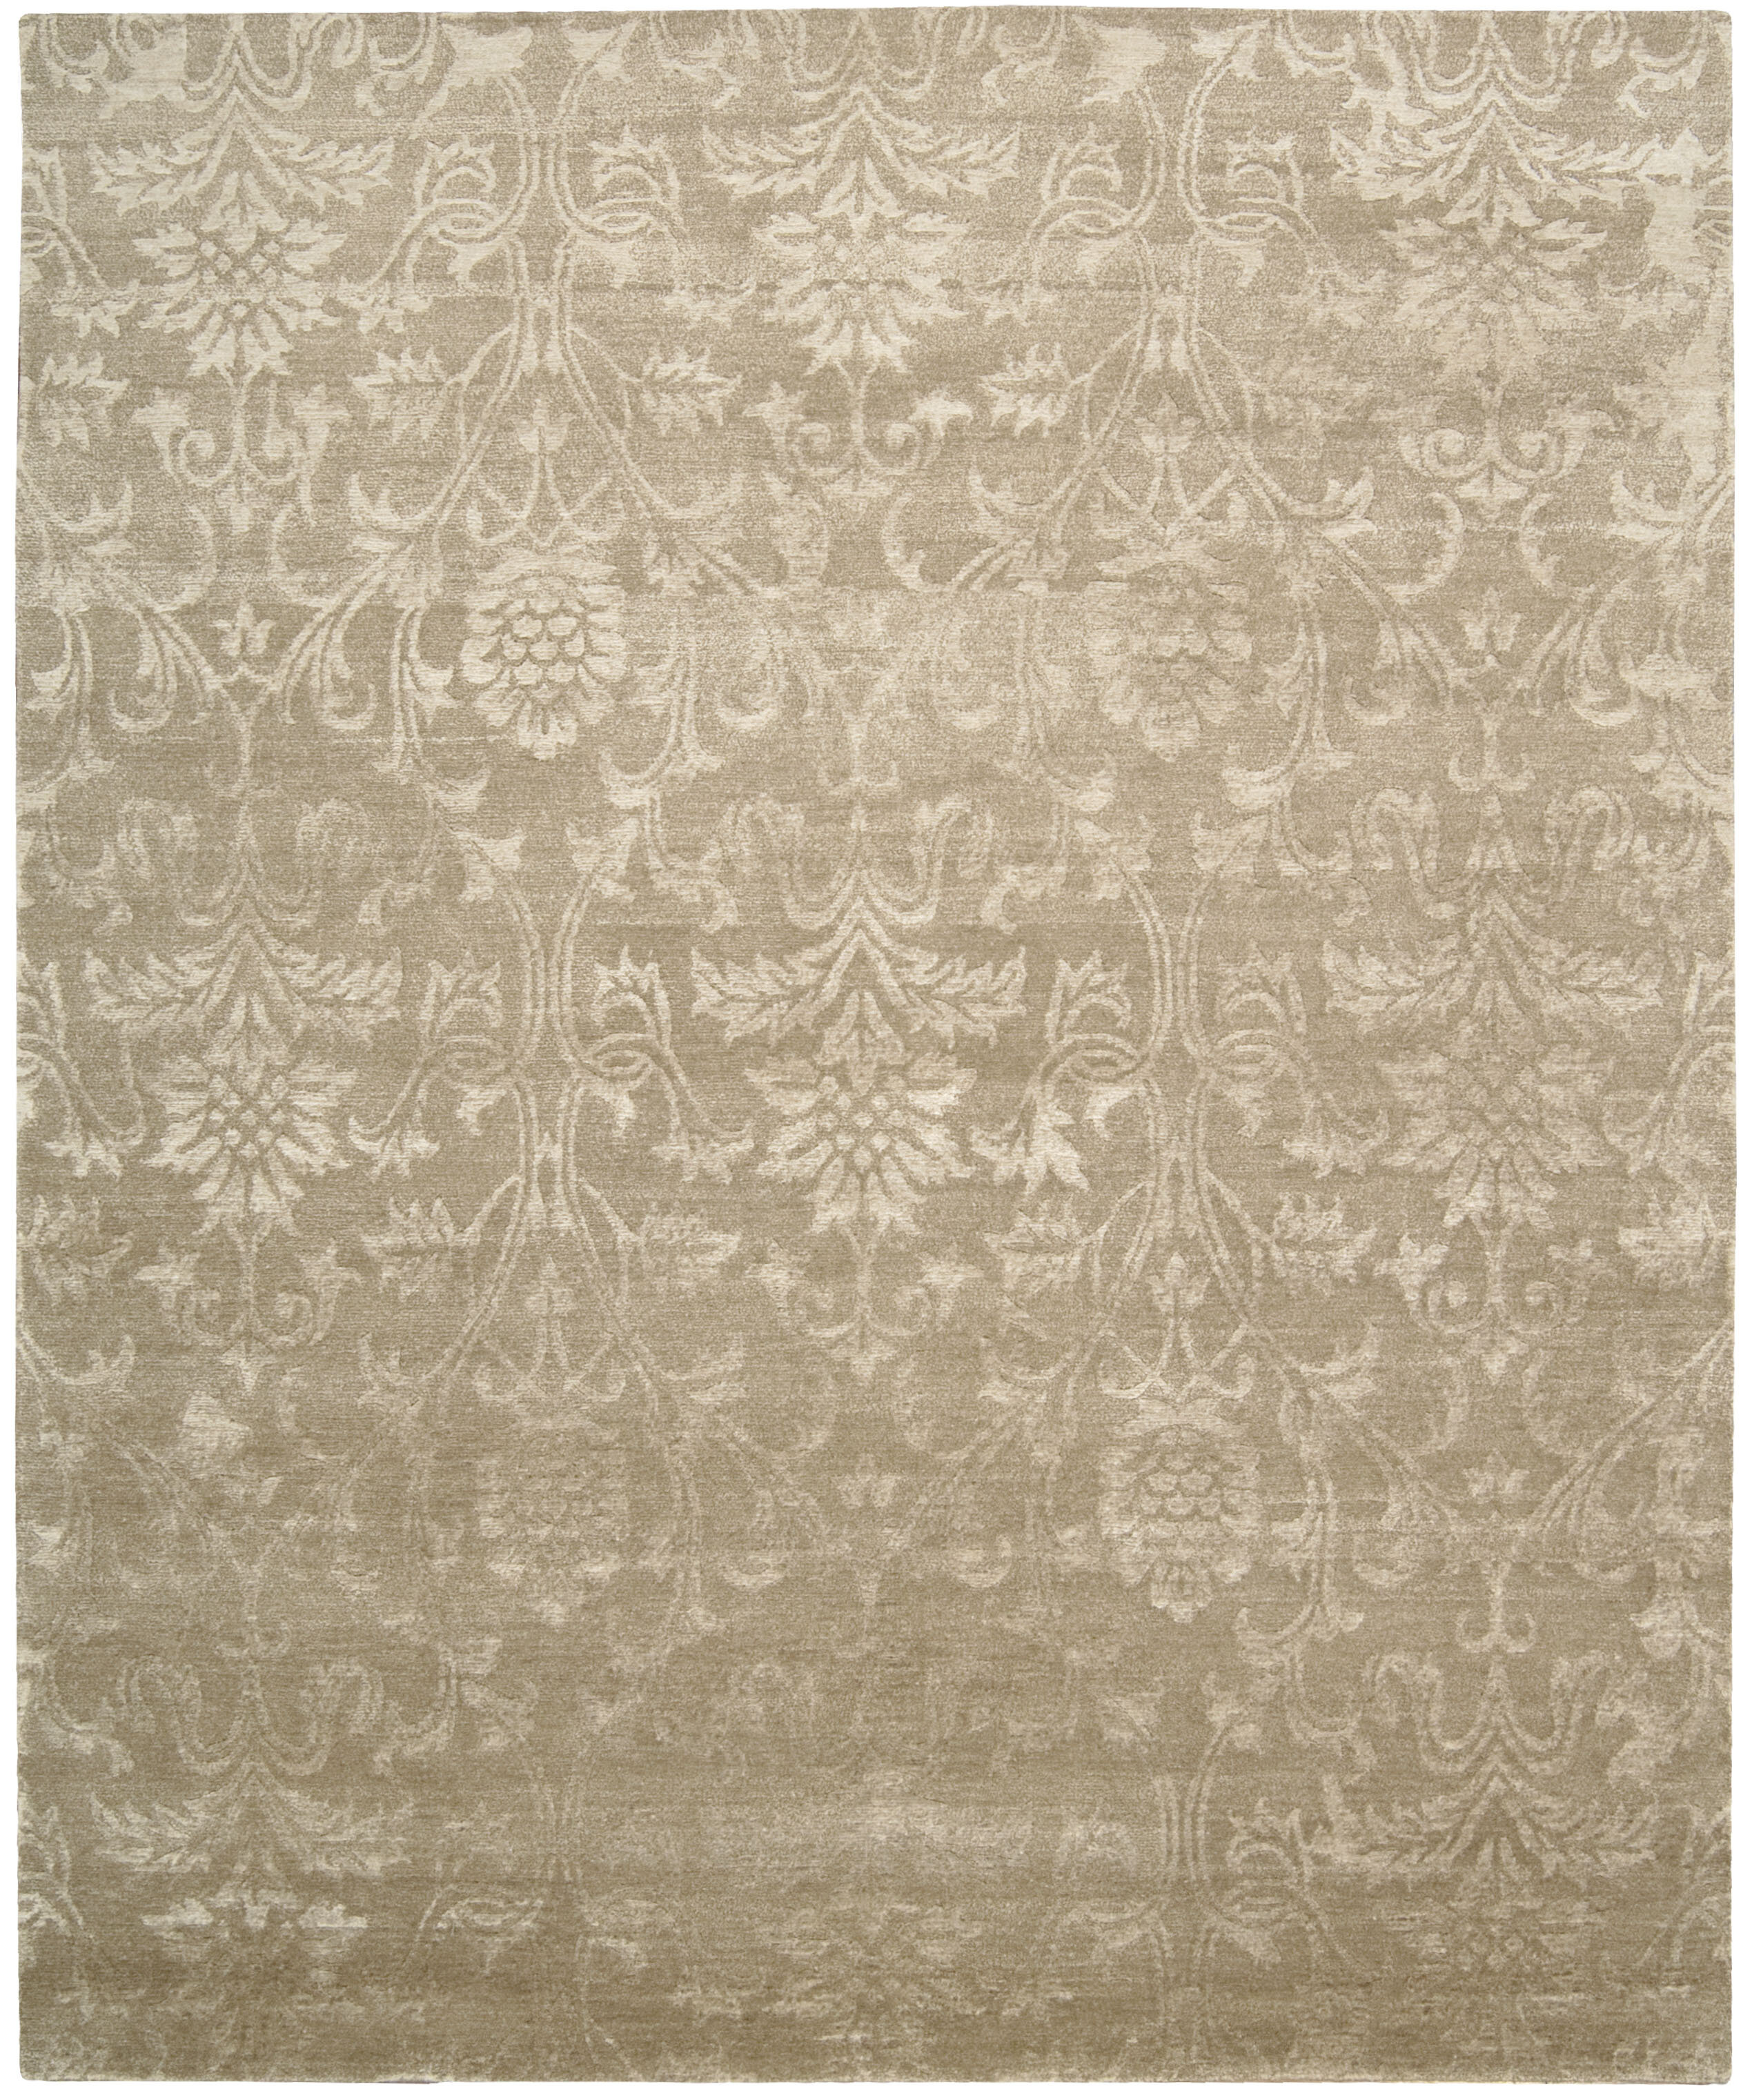 French Country Yellow Gold Hallway Runners You Ll Love In 2021 Wayfair